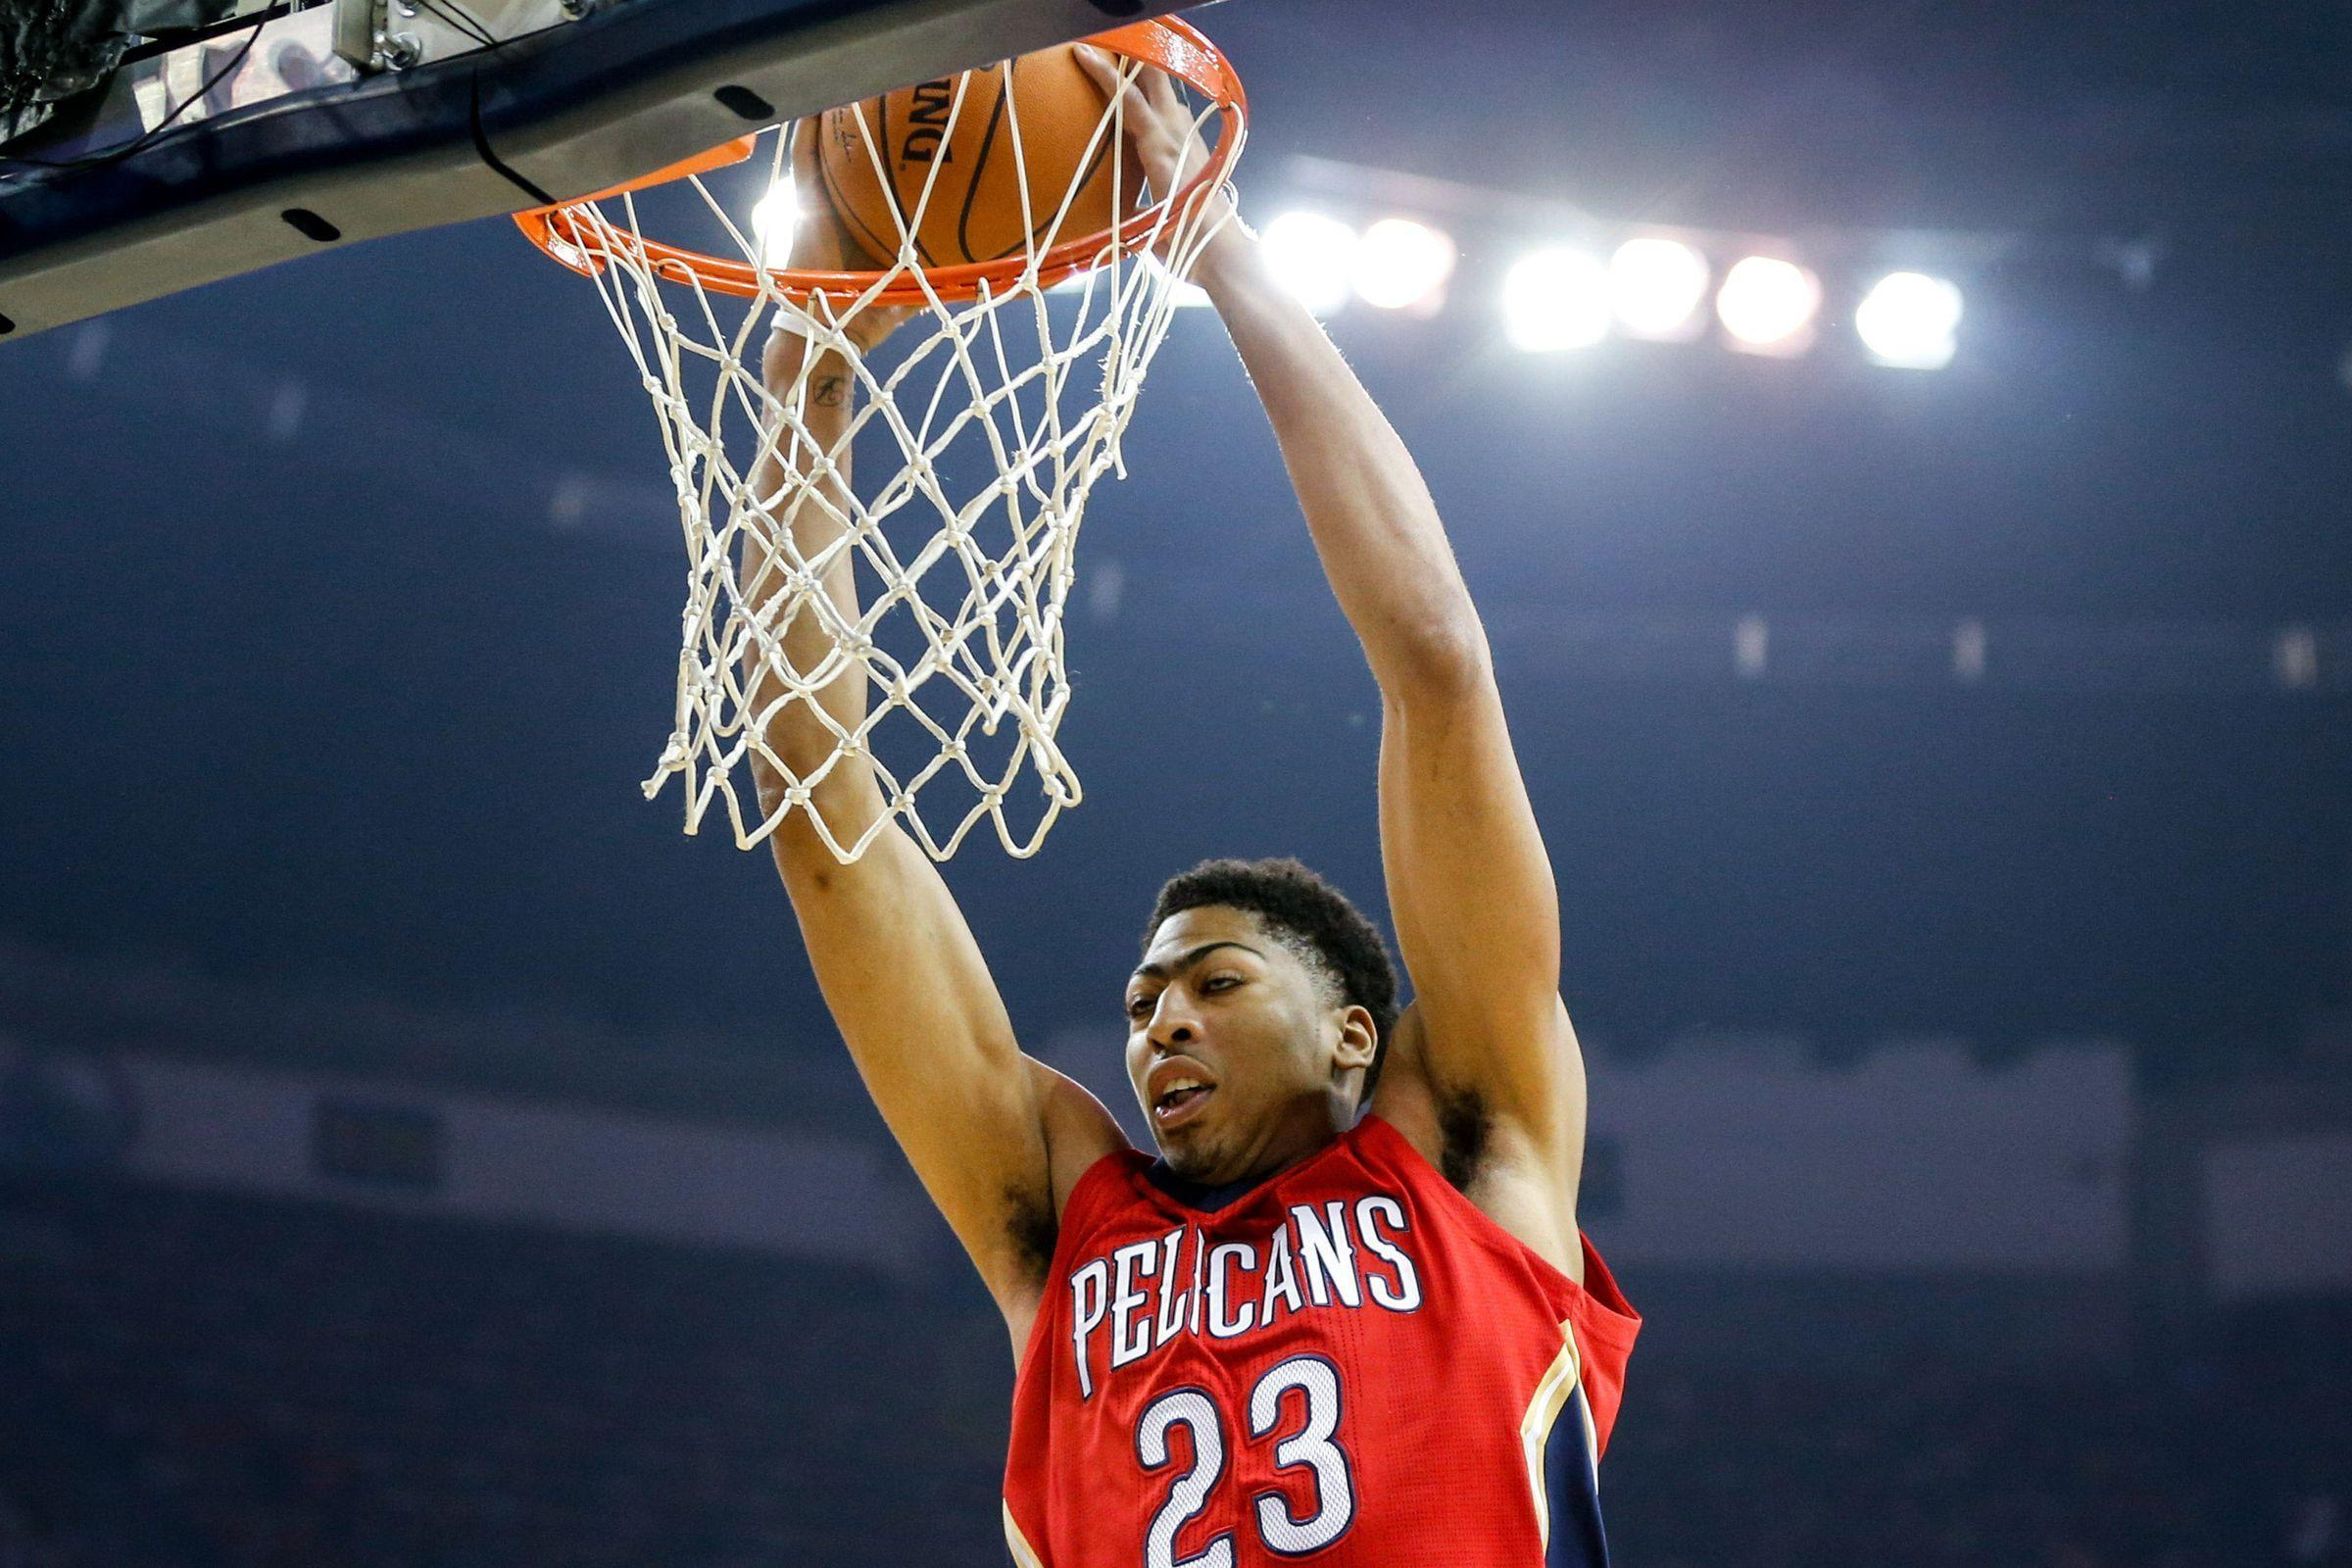 Anthony Davis Wallpapers High Resolution and Quality Download